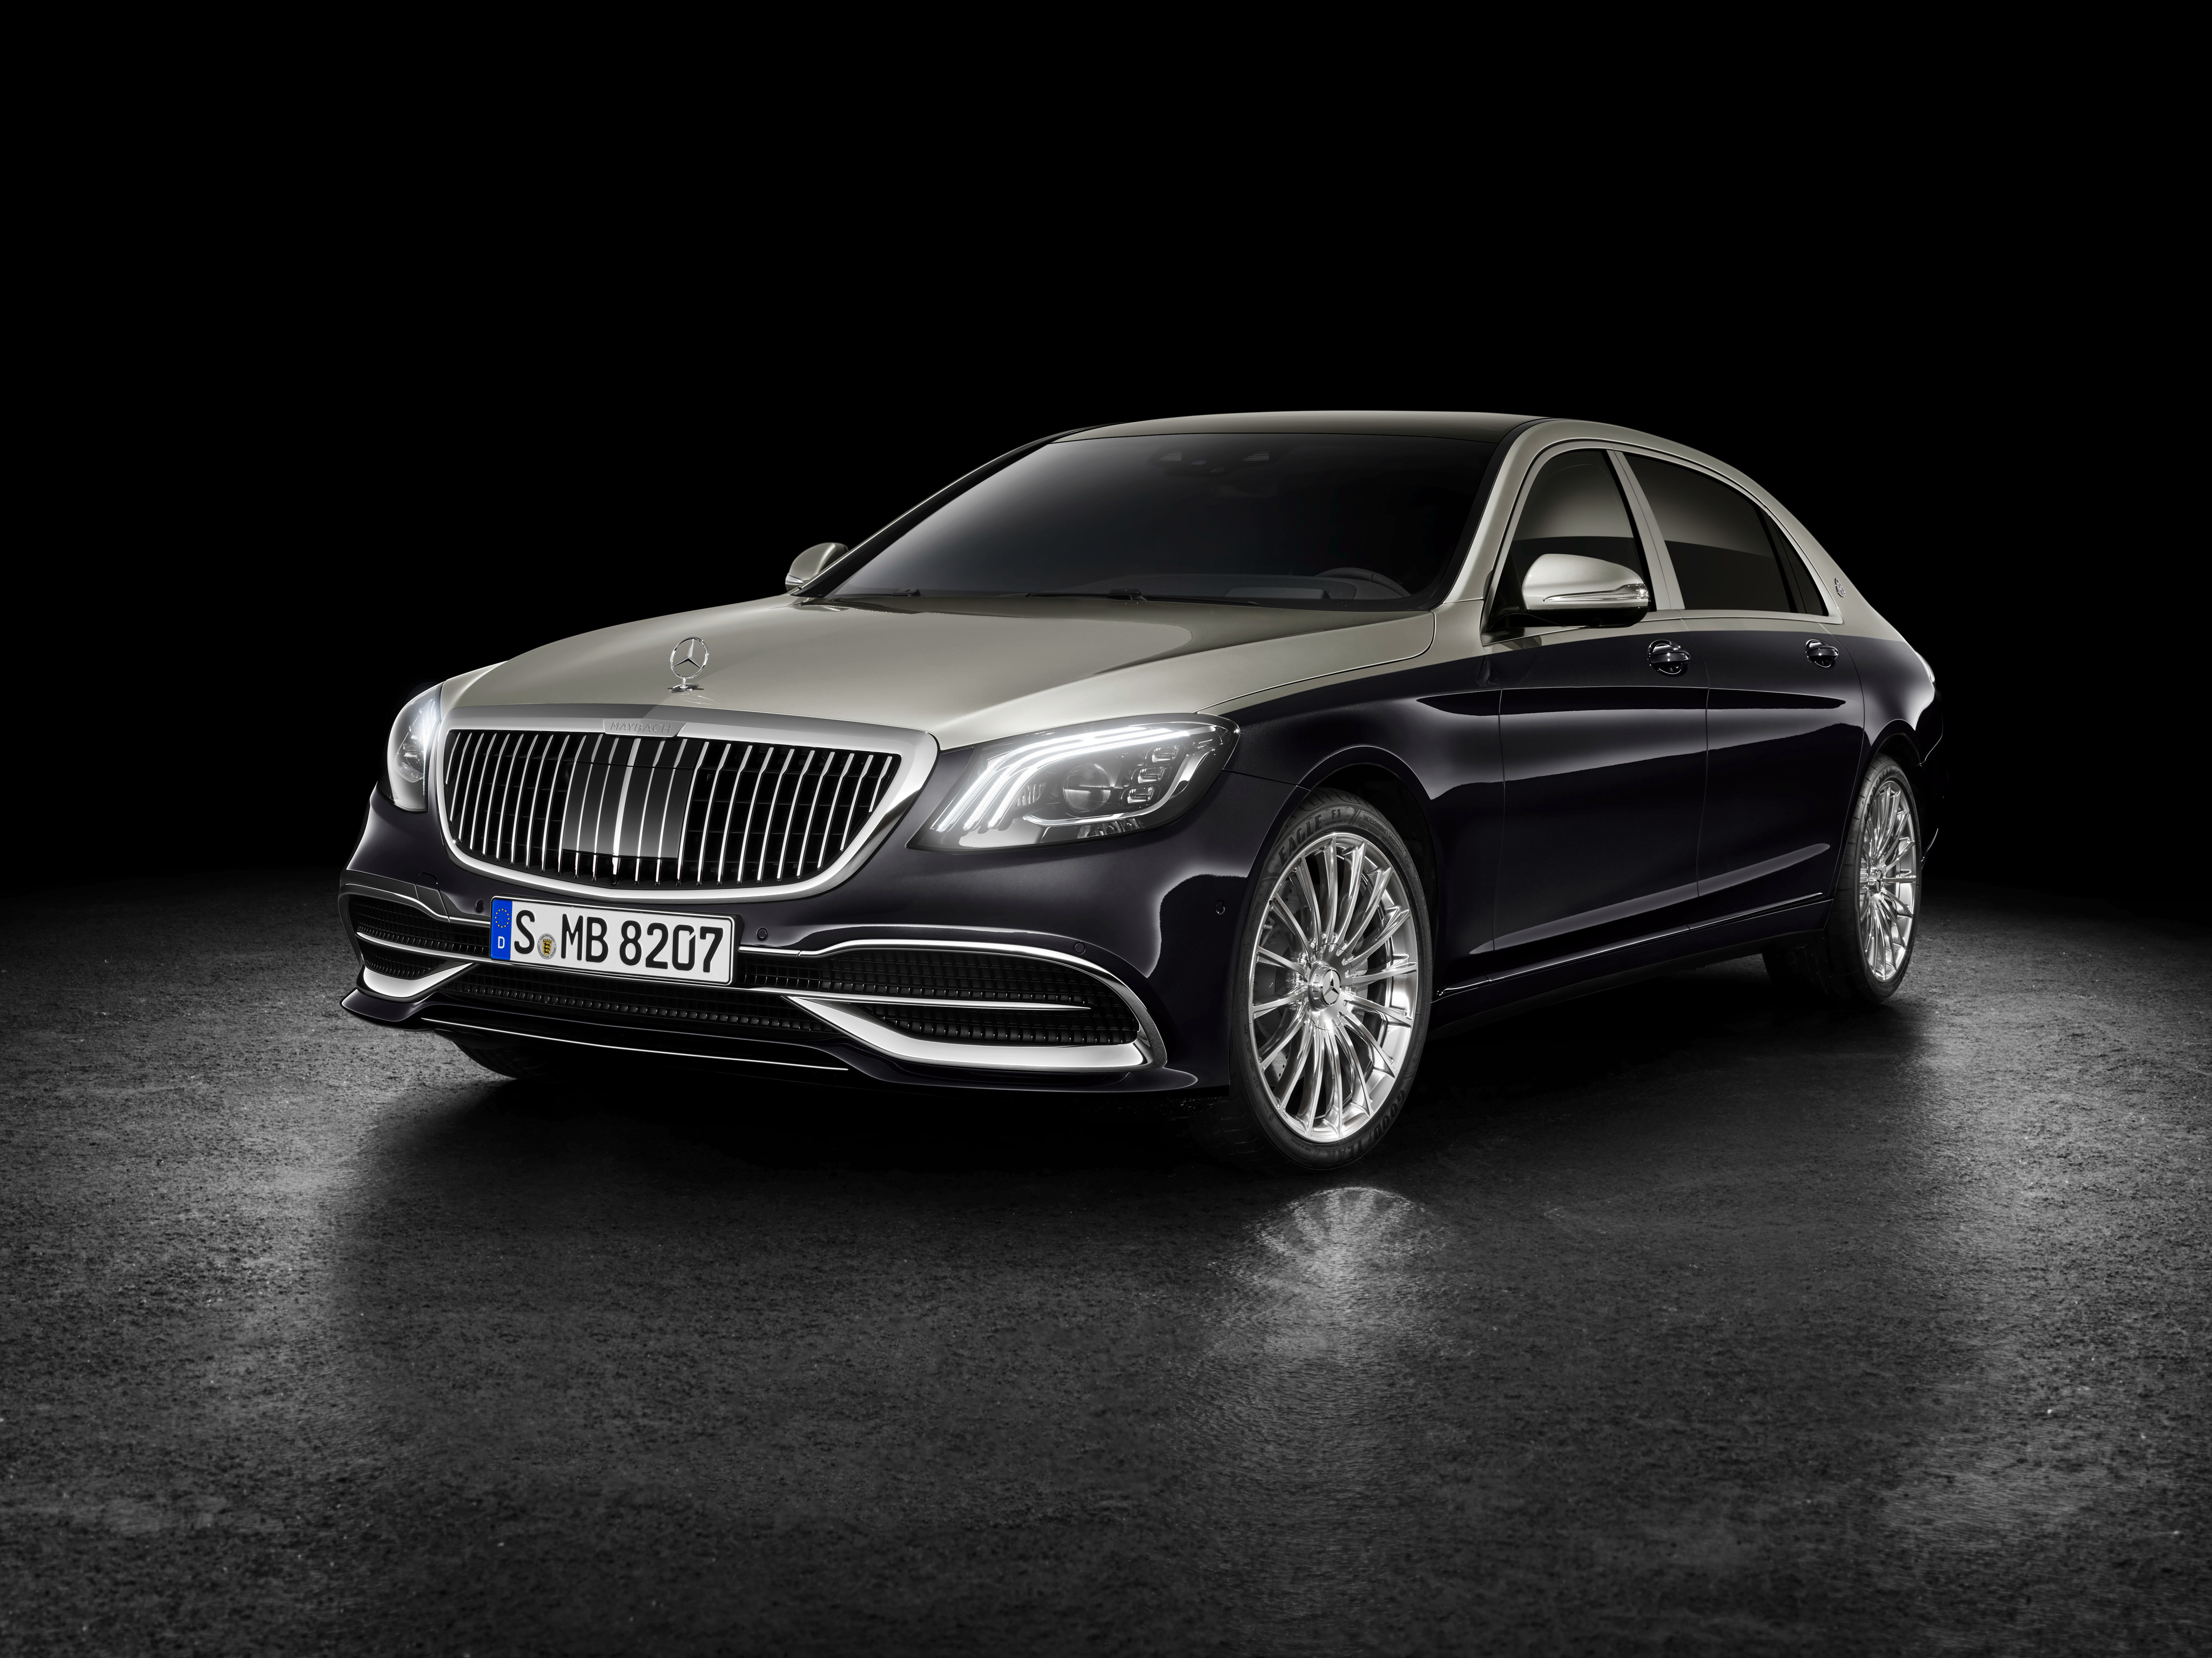 1600x1200 Mercedes Benz Maybach S 560 2018 Front 1600x1200